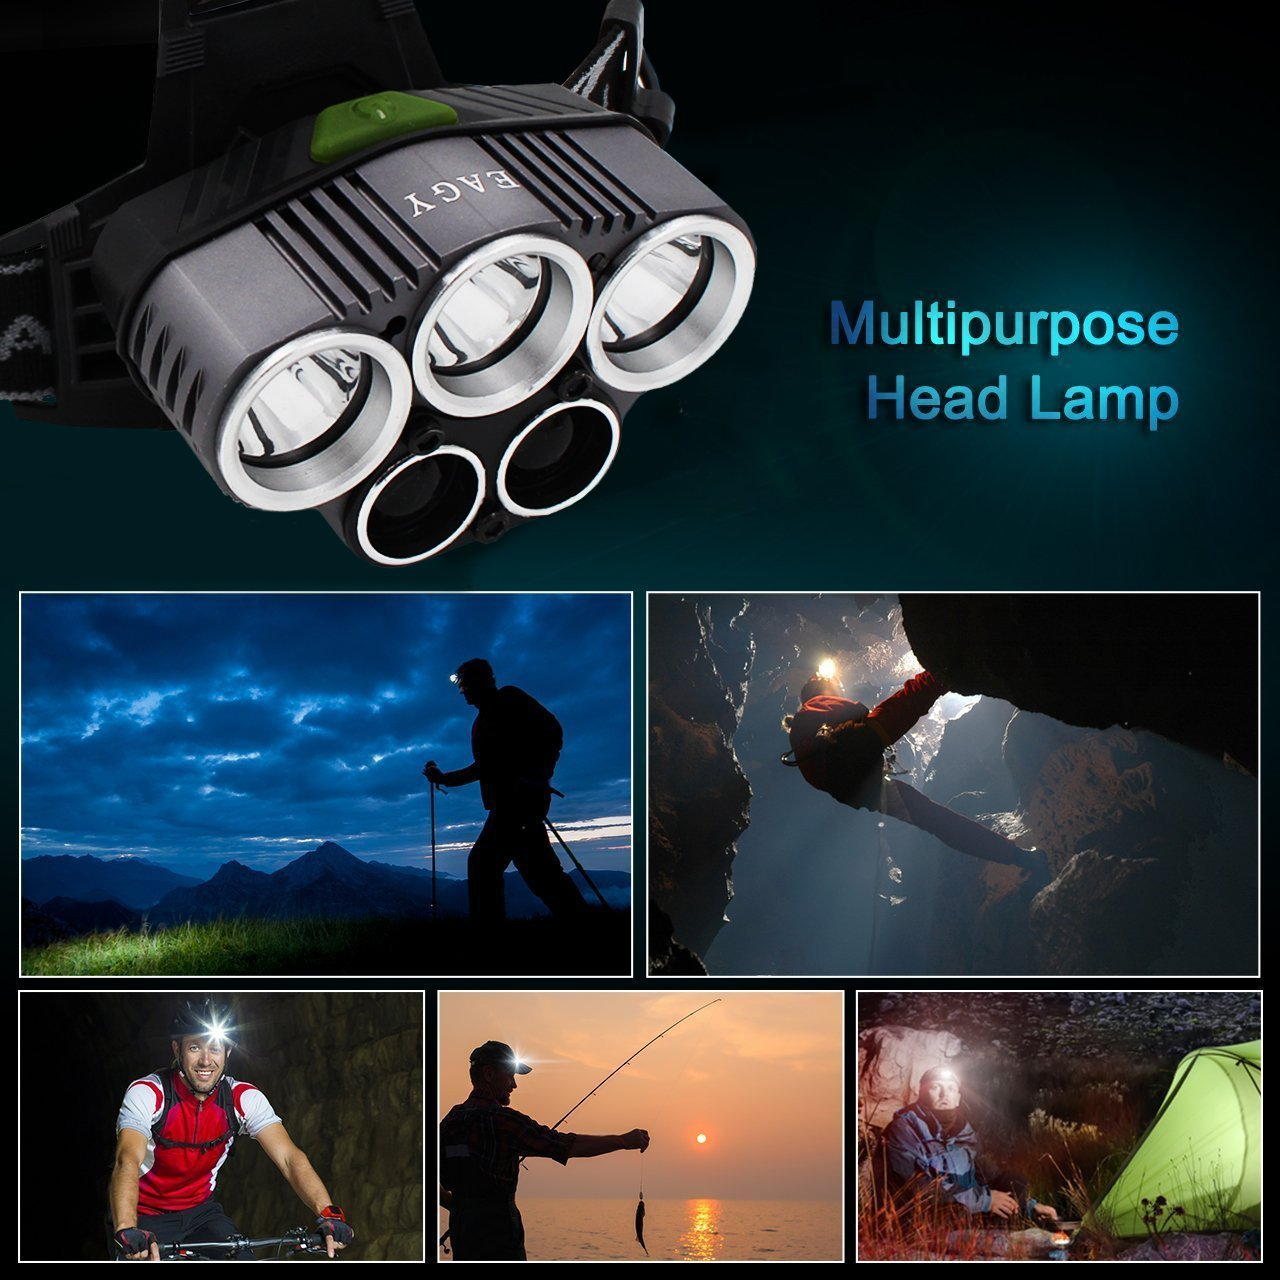 EAGY Headlamp, 5000 Lumen CREE LED Work Headlight,18650 Rechargeable Waterproof Flashlight with 6 Modes Zoomable Work Light,Best Head Lights for Camping Running Hiking by EAGY (Image #7)